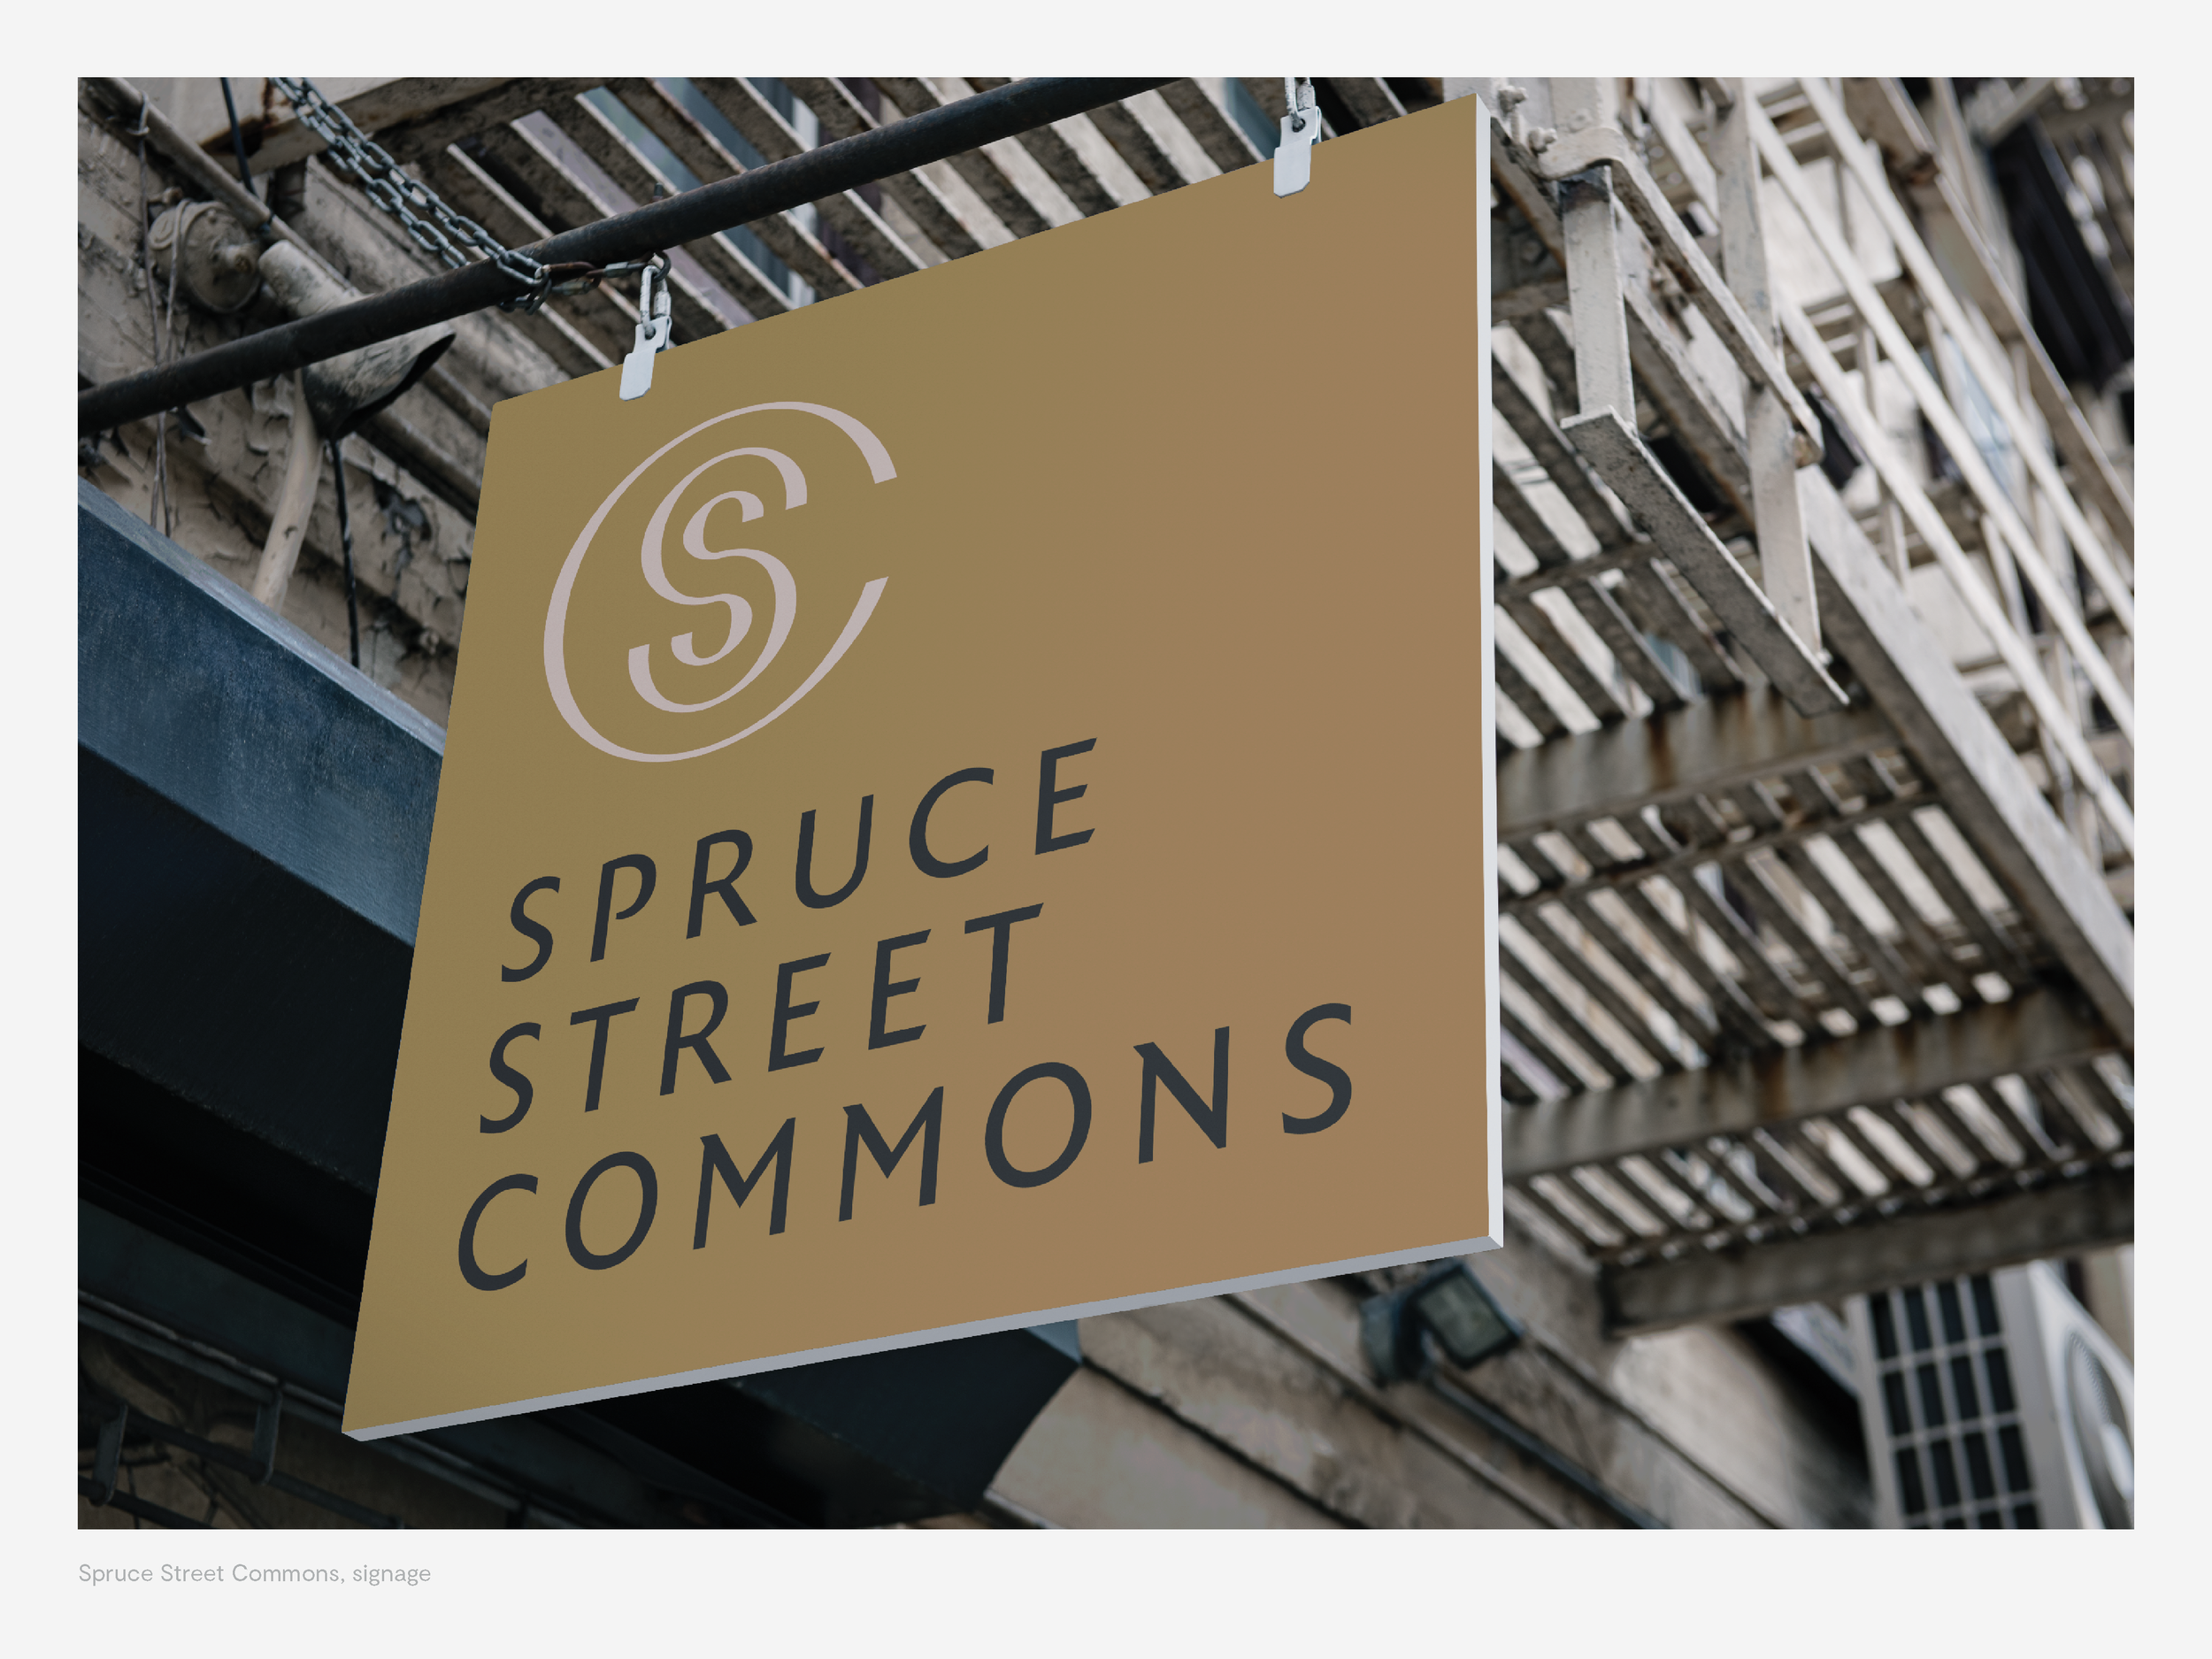 36 Spruce Street Commons Signage.png